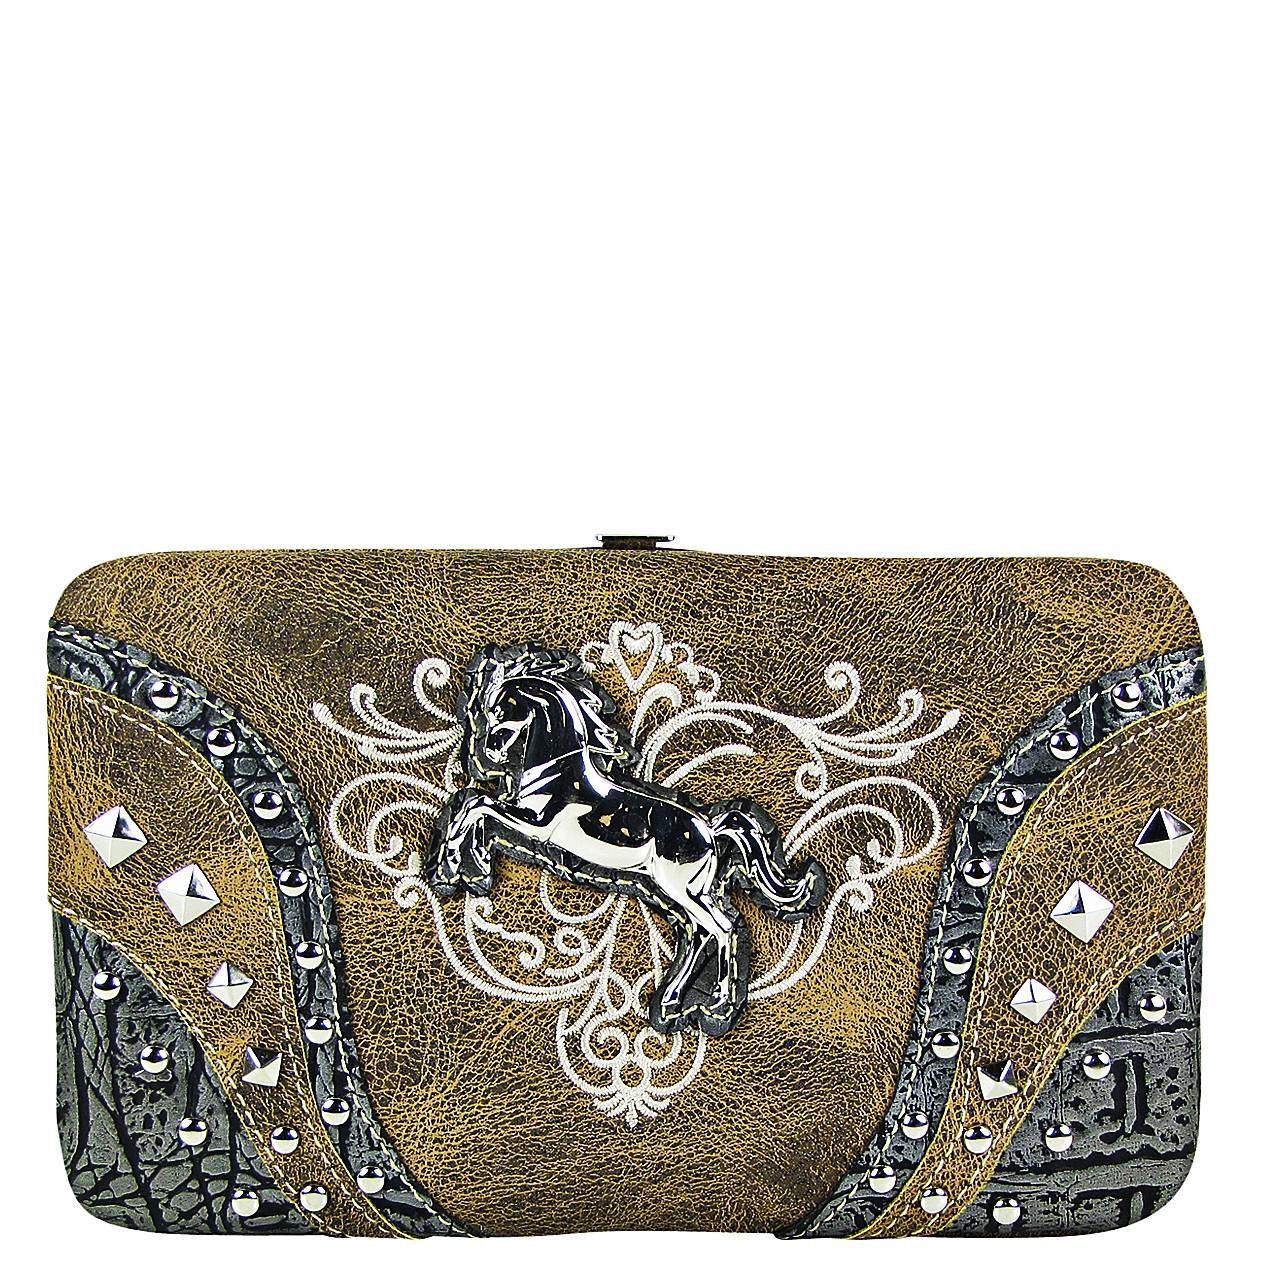 BROWN STITCHED TOOLED STUDDED HORSE LOOK FLAT THICK WALLET FW2-12126BRN